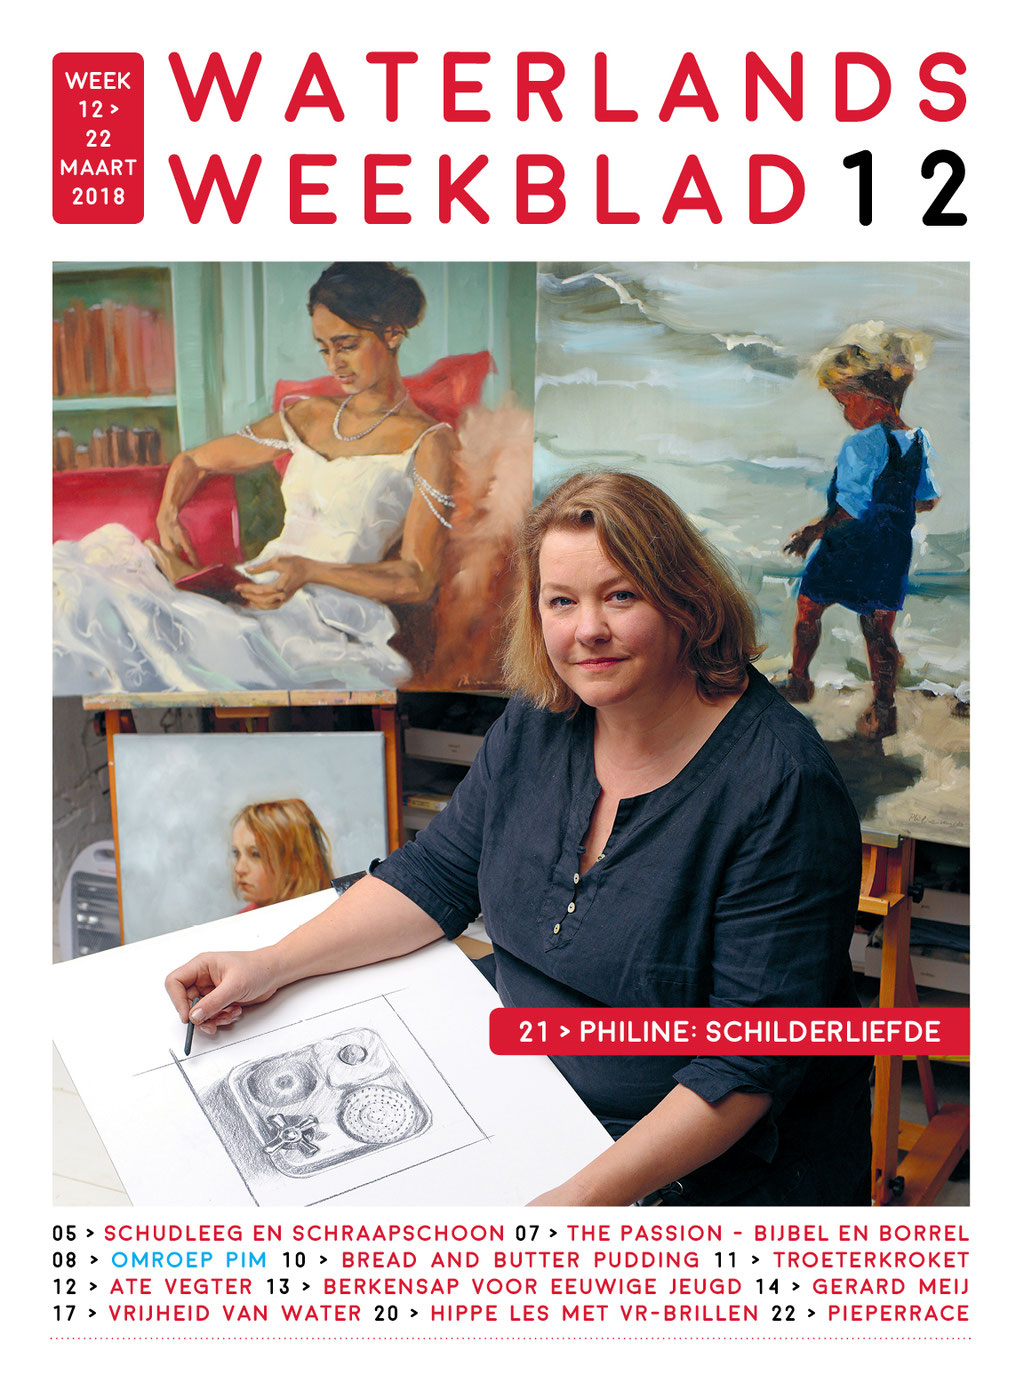 Waterlands Weekblad 18 maart 2018